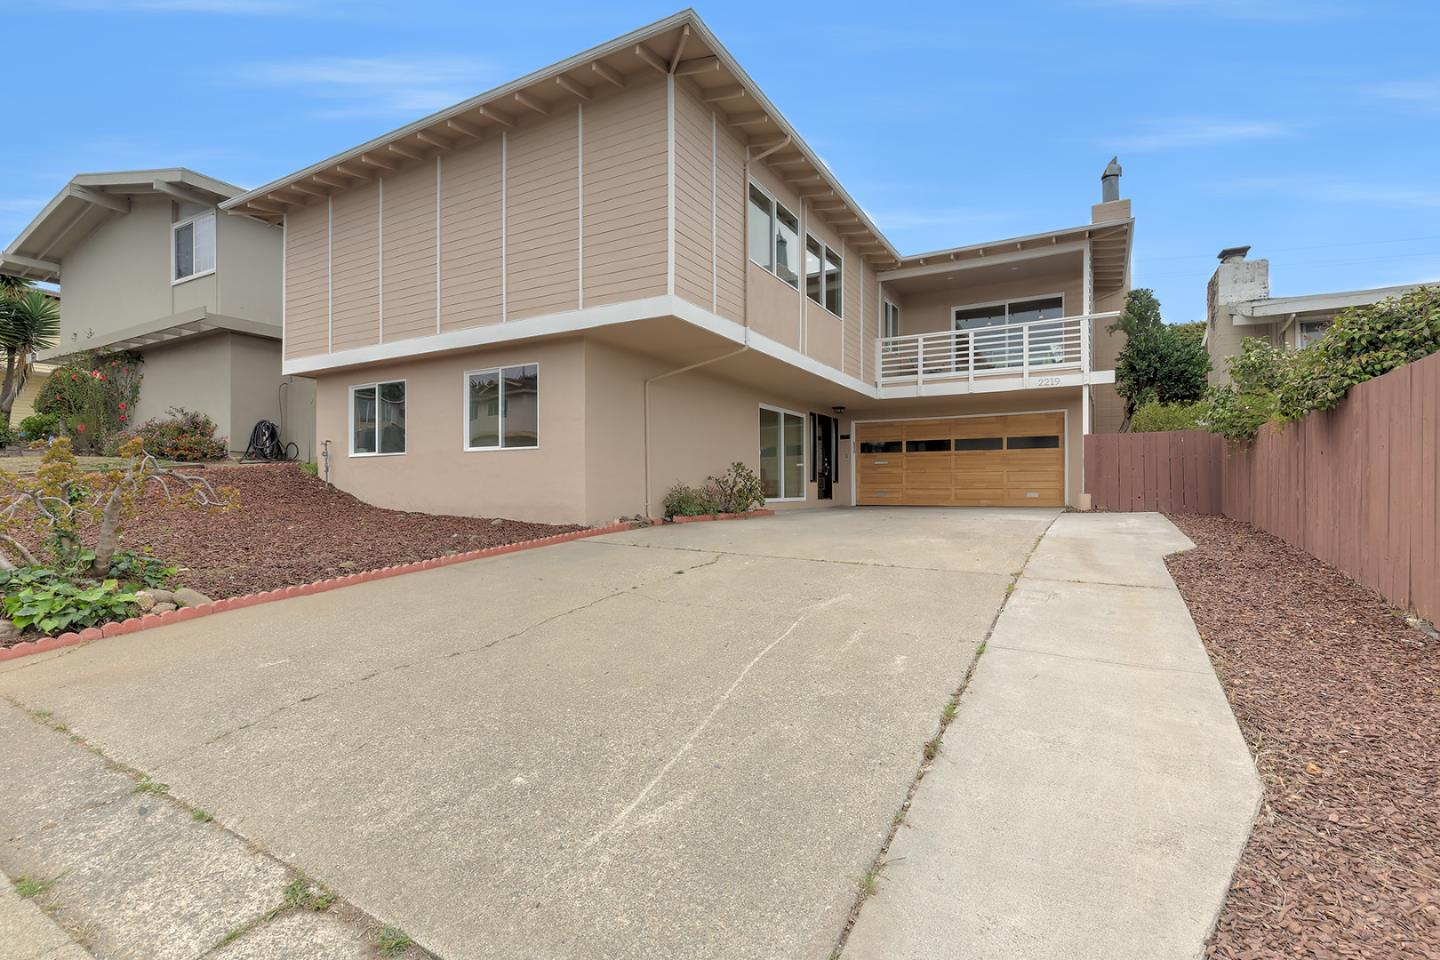 Single Family Home for Sale at 2219 Shannon Drive 2219 Shannon Drive South San Francisco, California 94080 United States